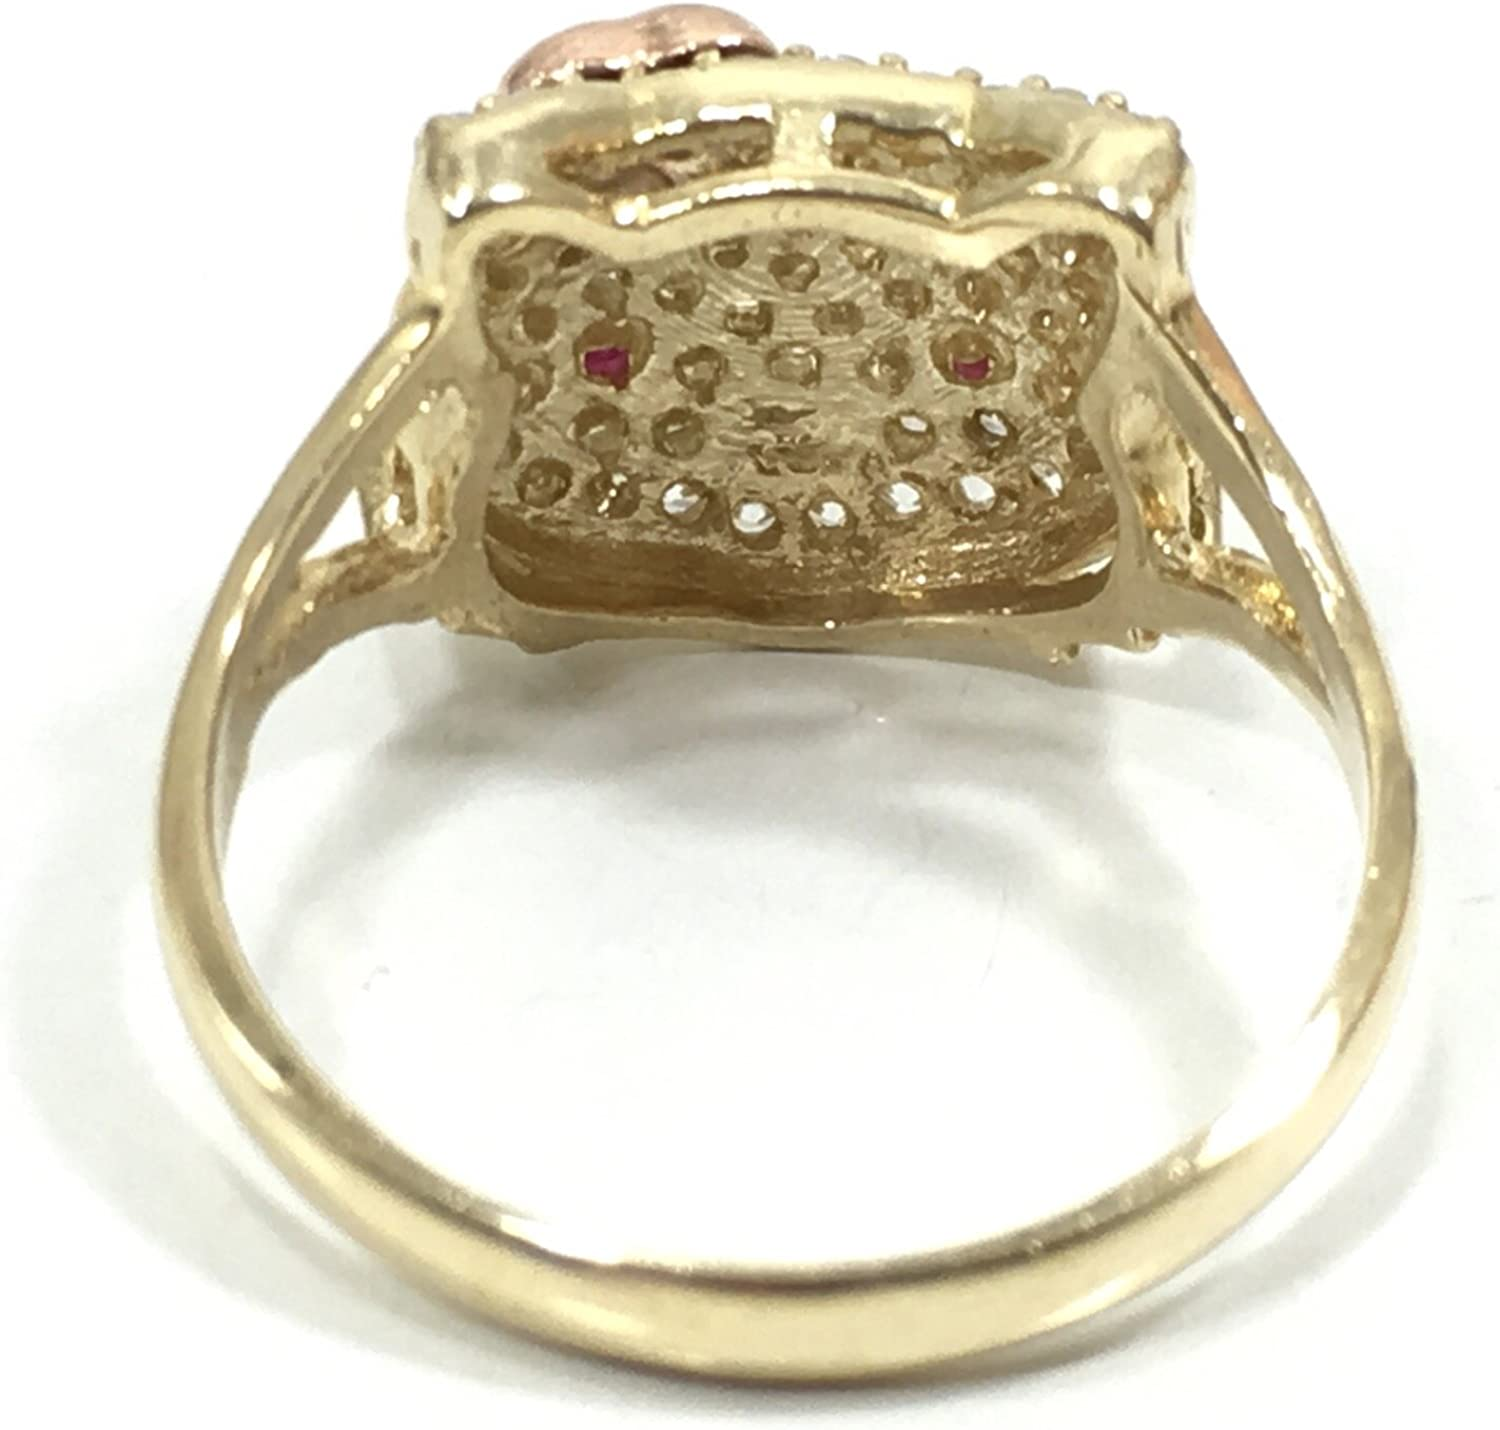 NEW 10K YELLOW GOLD 14 MM WIDE HELLO KITTY HIP HOP STYLE RING R3038